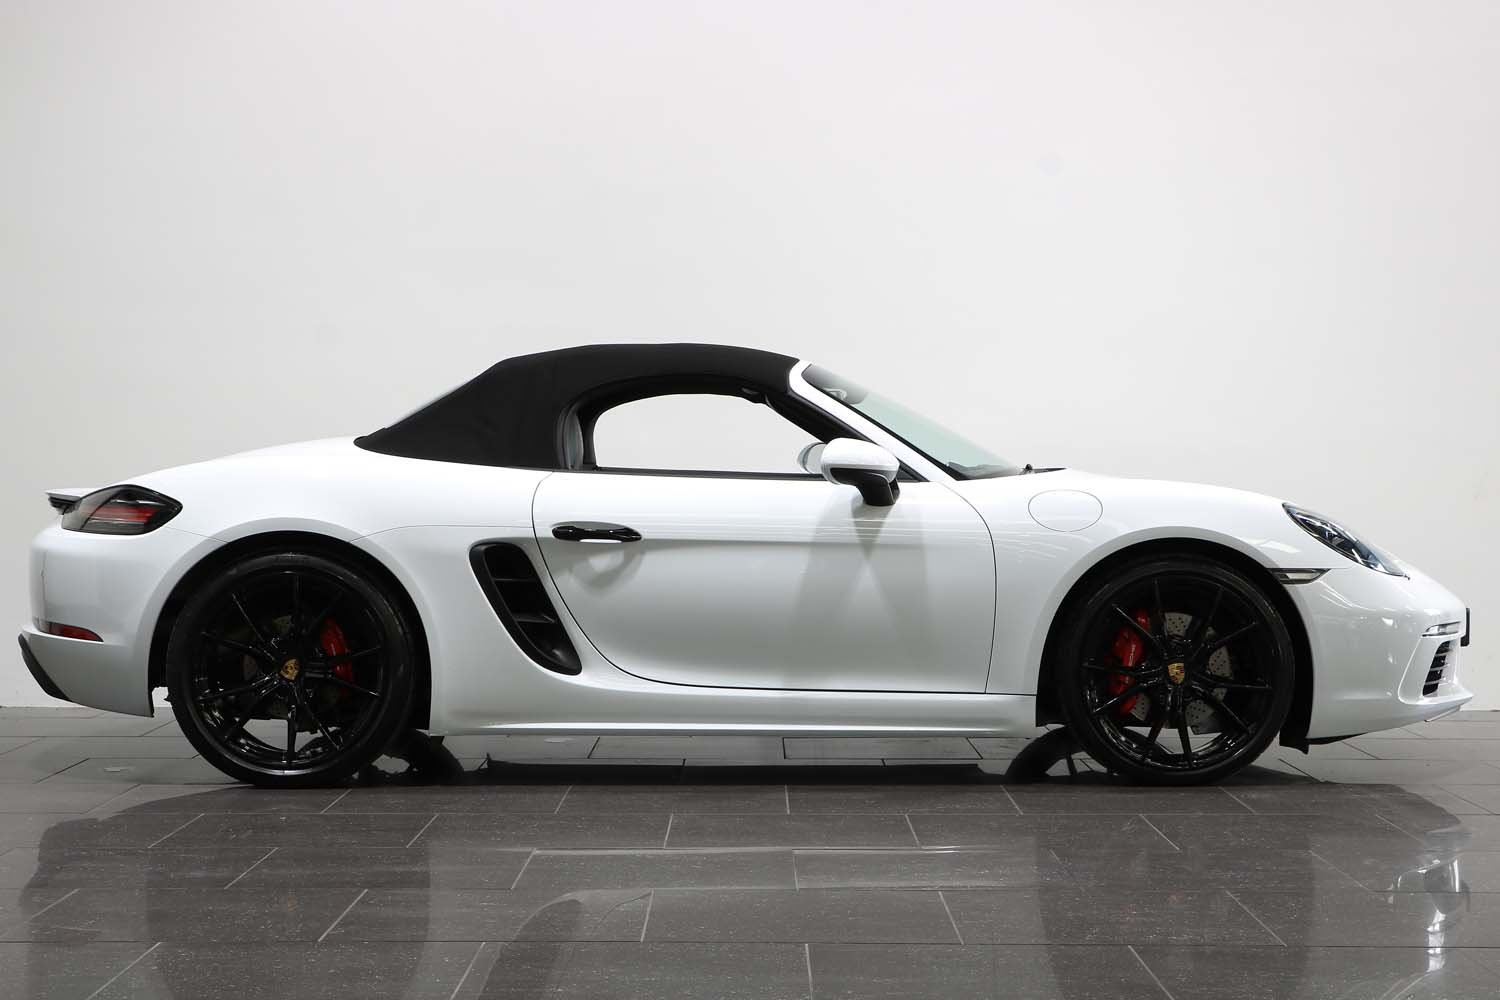 2018 PORSCHE 718 BOXSTER S 2.5 PDK  For Sale (picture 2 of 6)